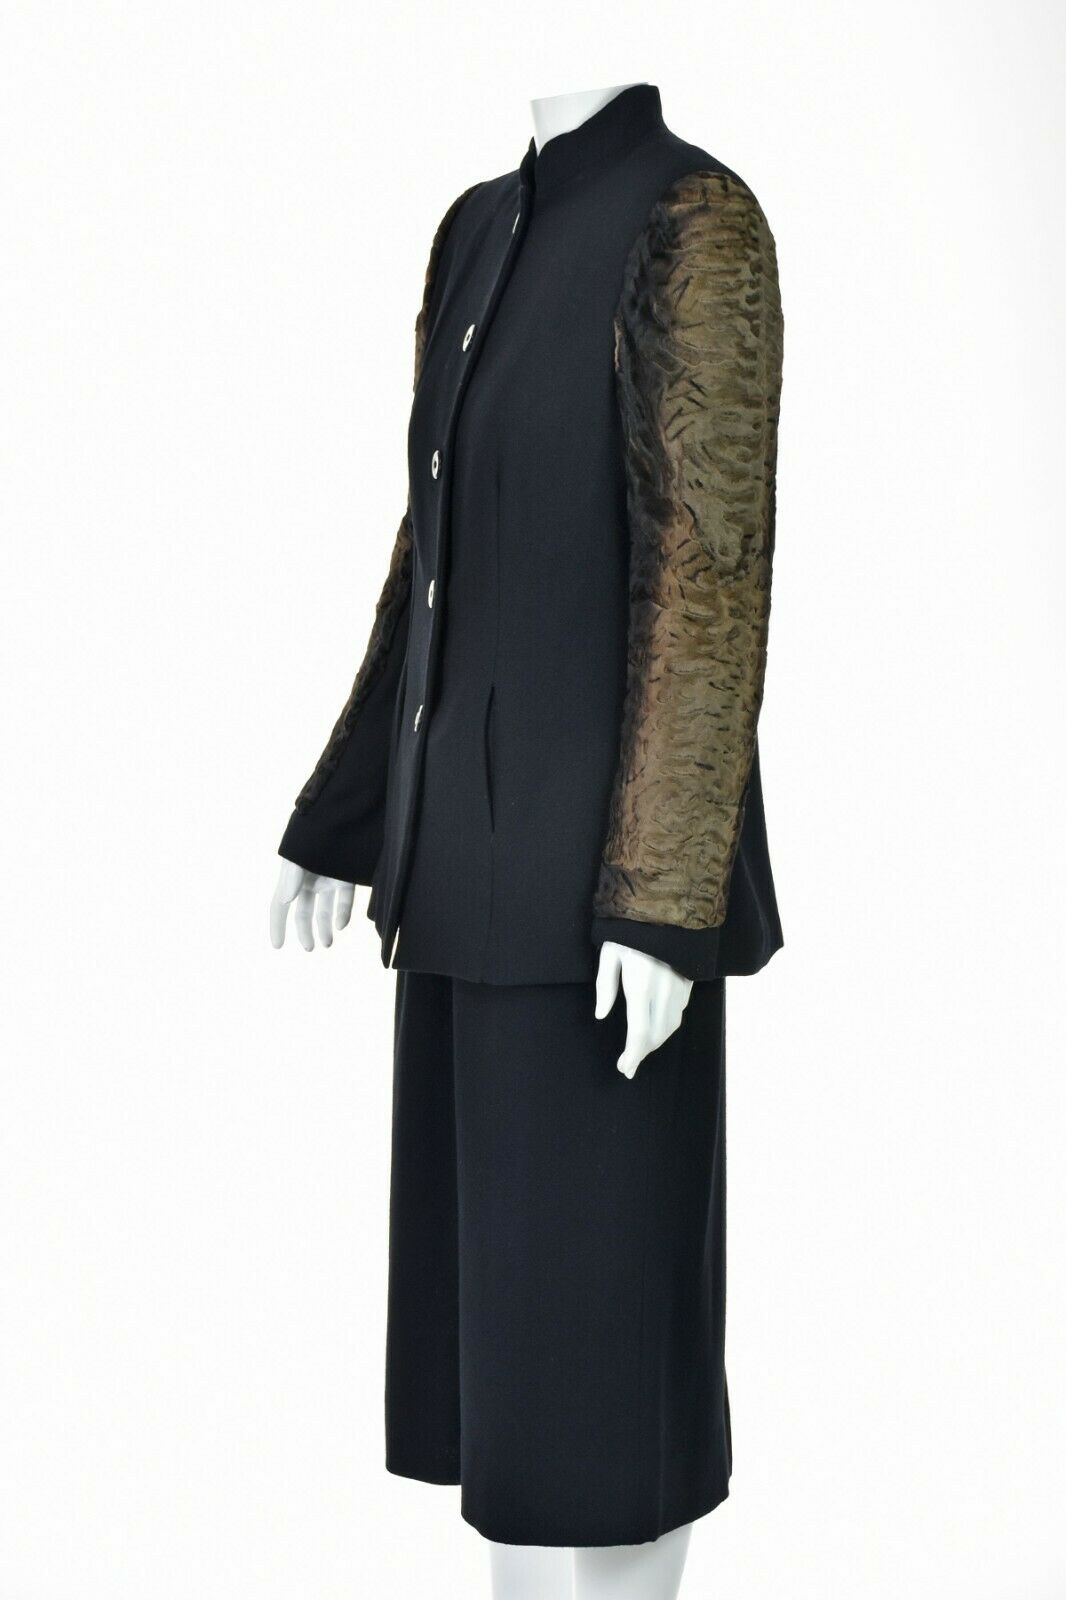 TRAVILLA Vintage Wool Crepe Skirt Suit with Persi… - image 4